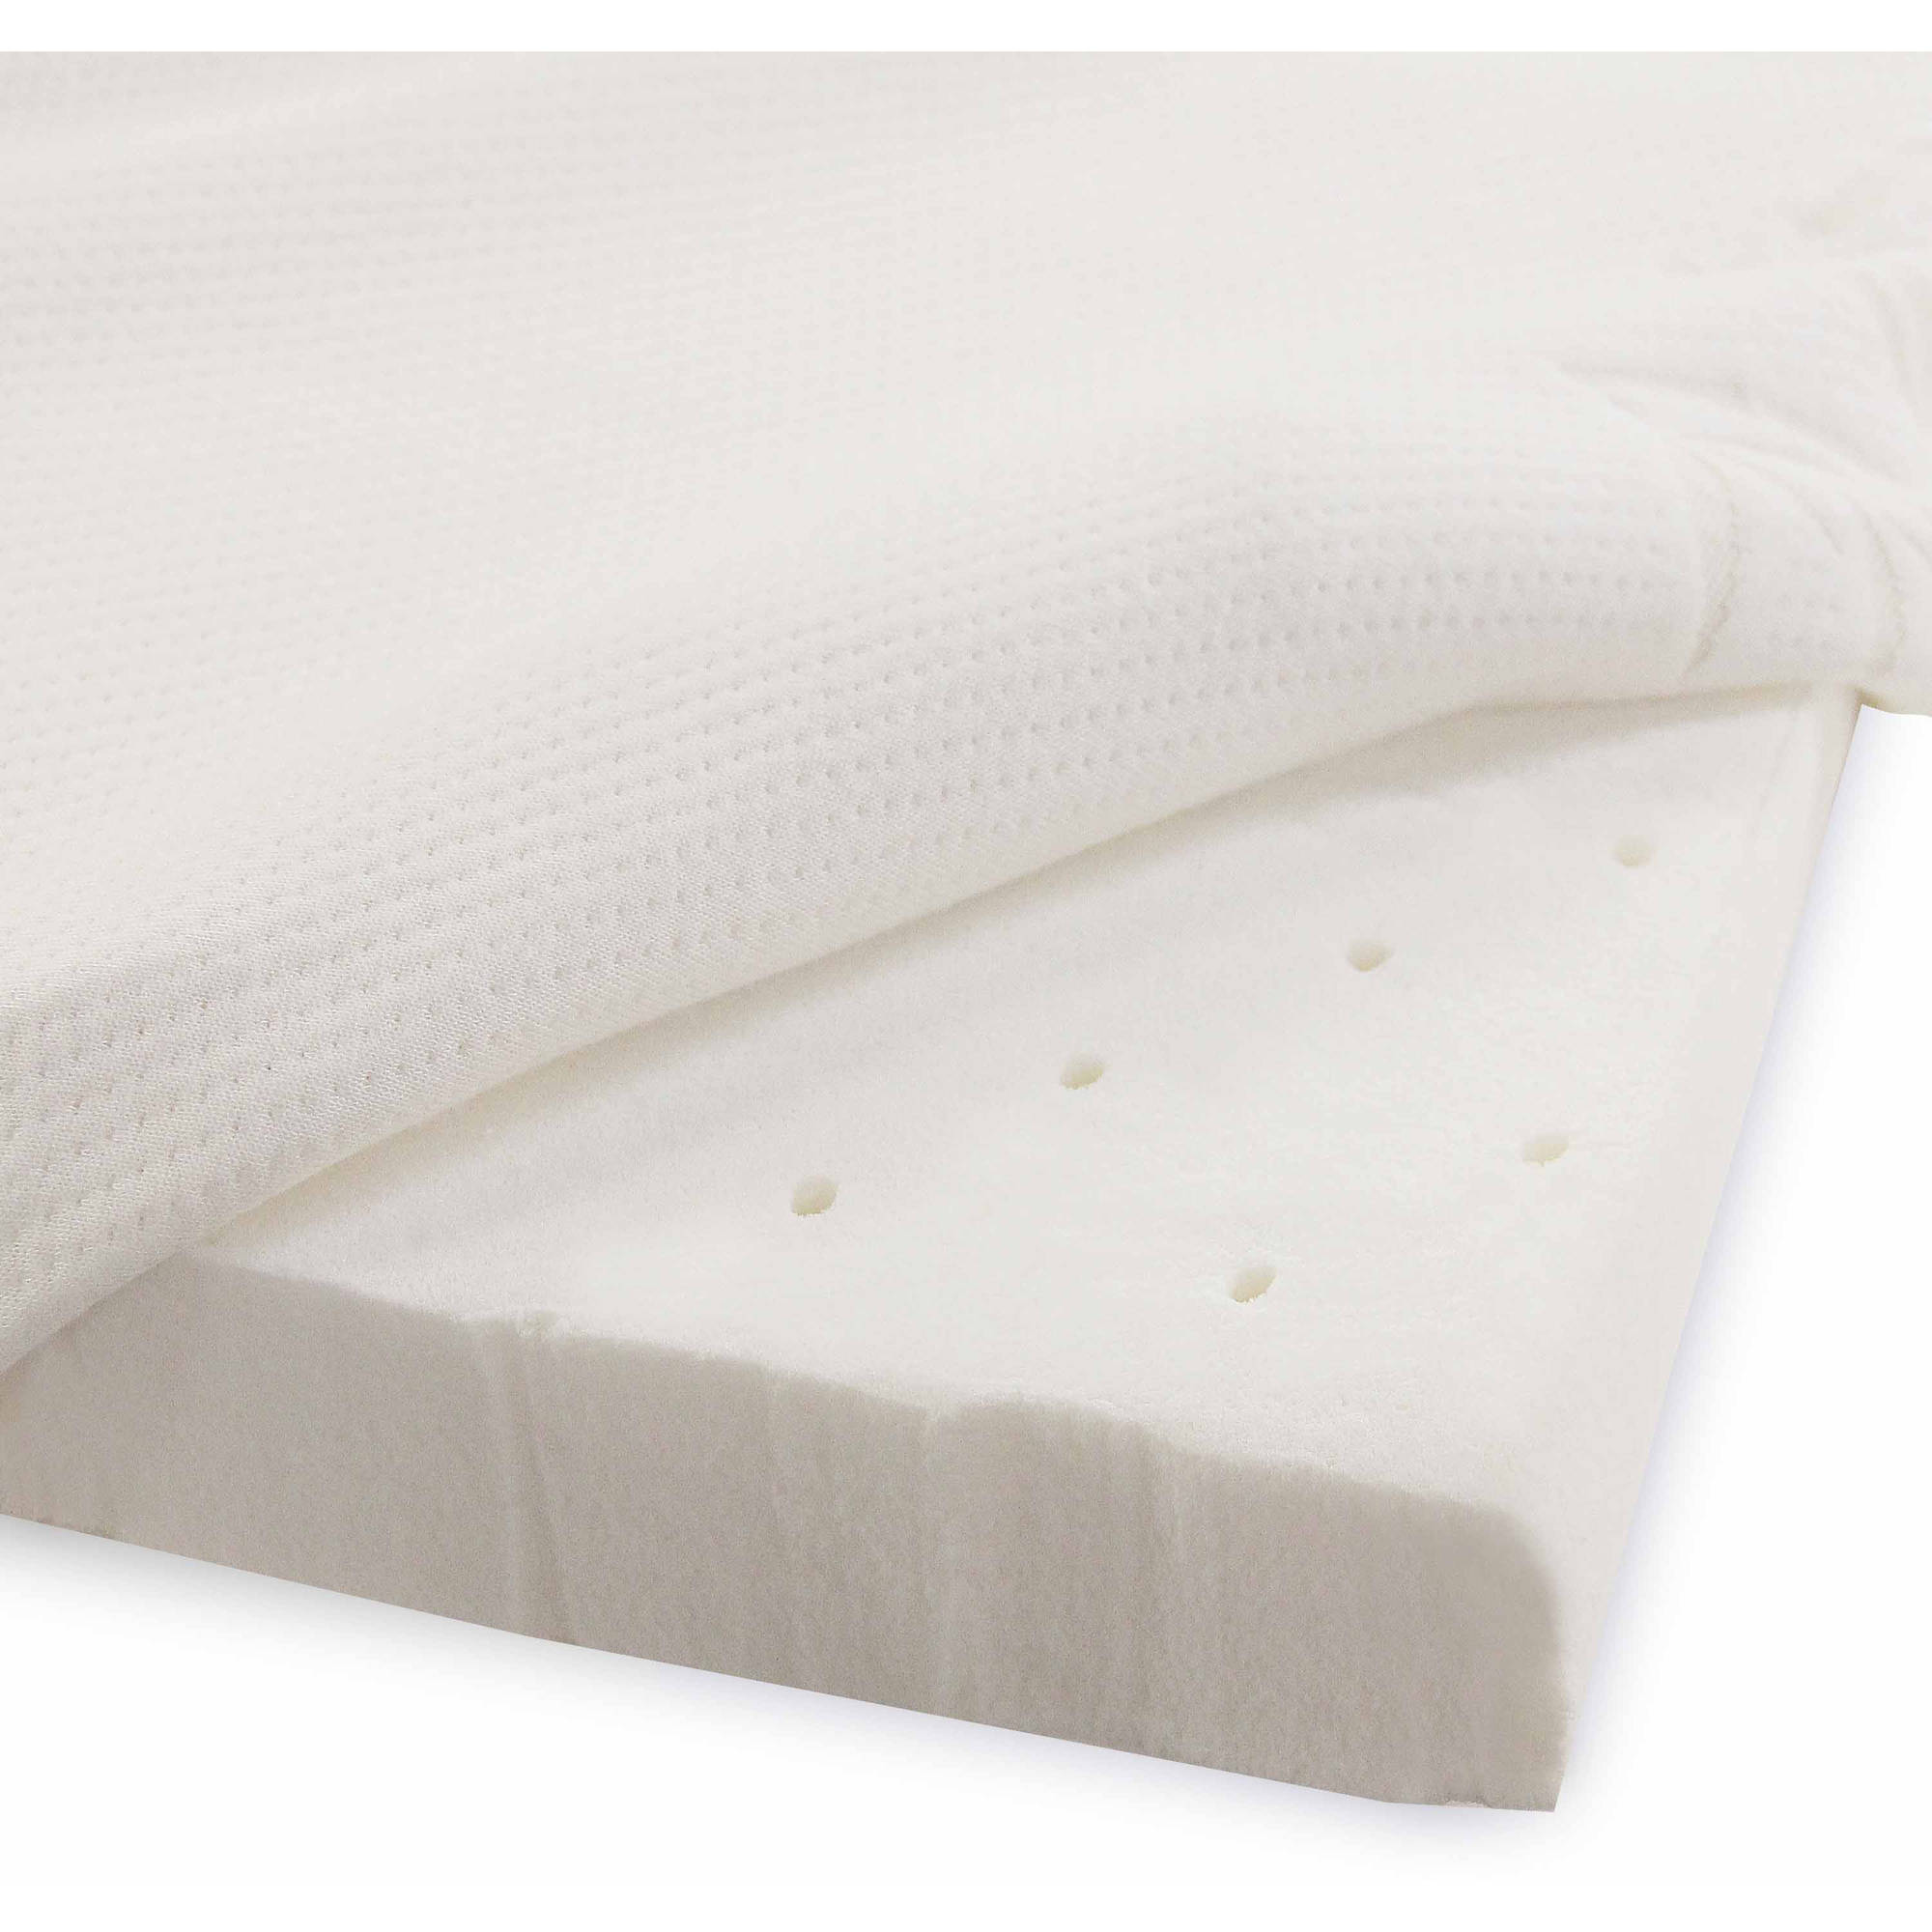 "Modern Sleep 2"" Latex Mattress Topper"